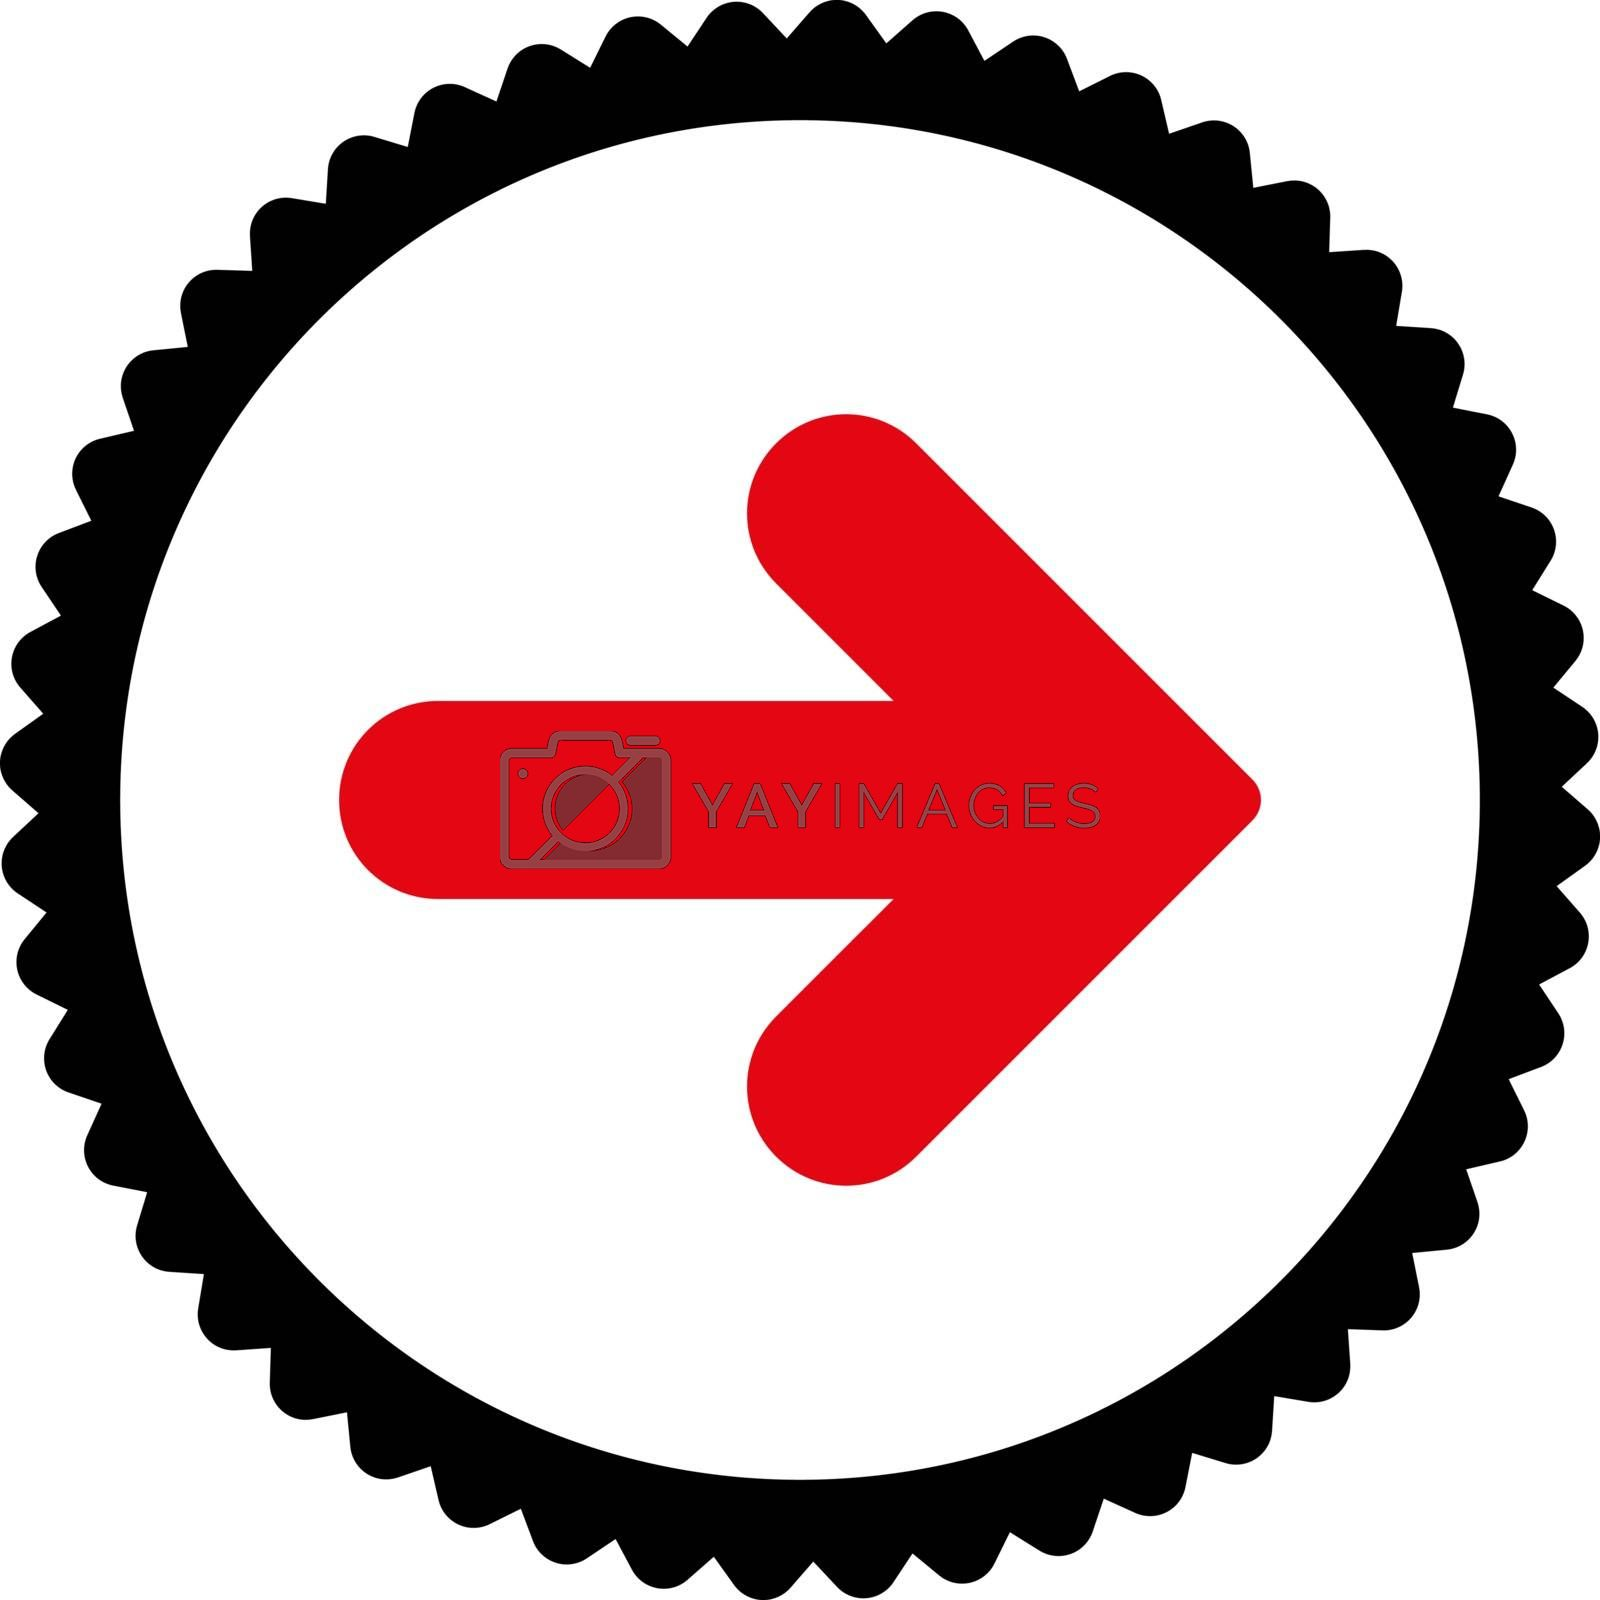 Arrow Right flat intensive red and black colors round stamp icon by Aha-Soft